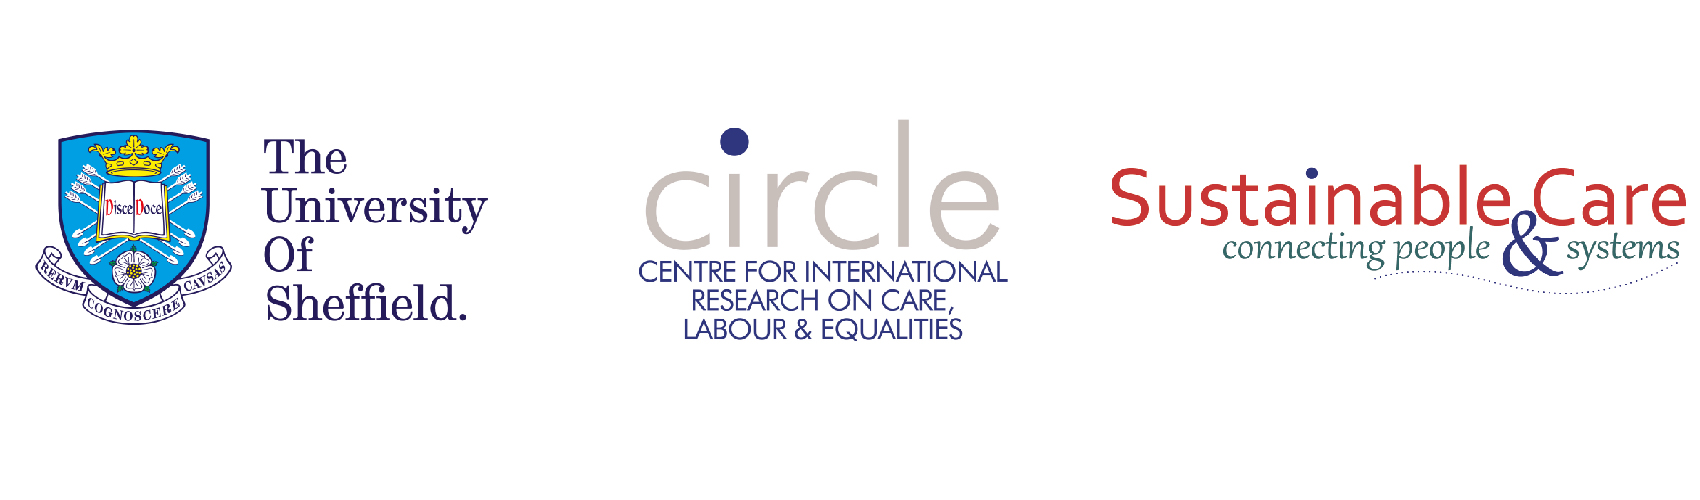 The University of Sheffield, CIRCLE and Sustainable Care logos